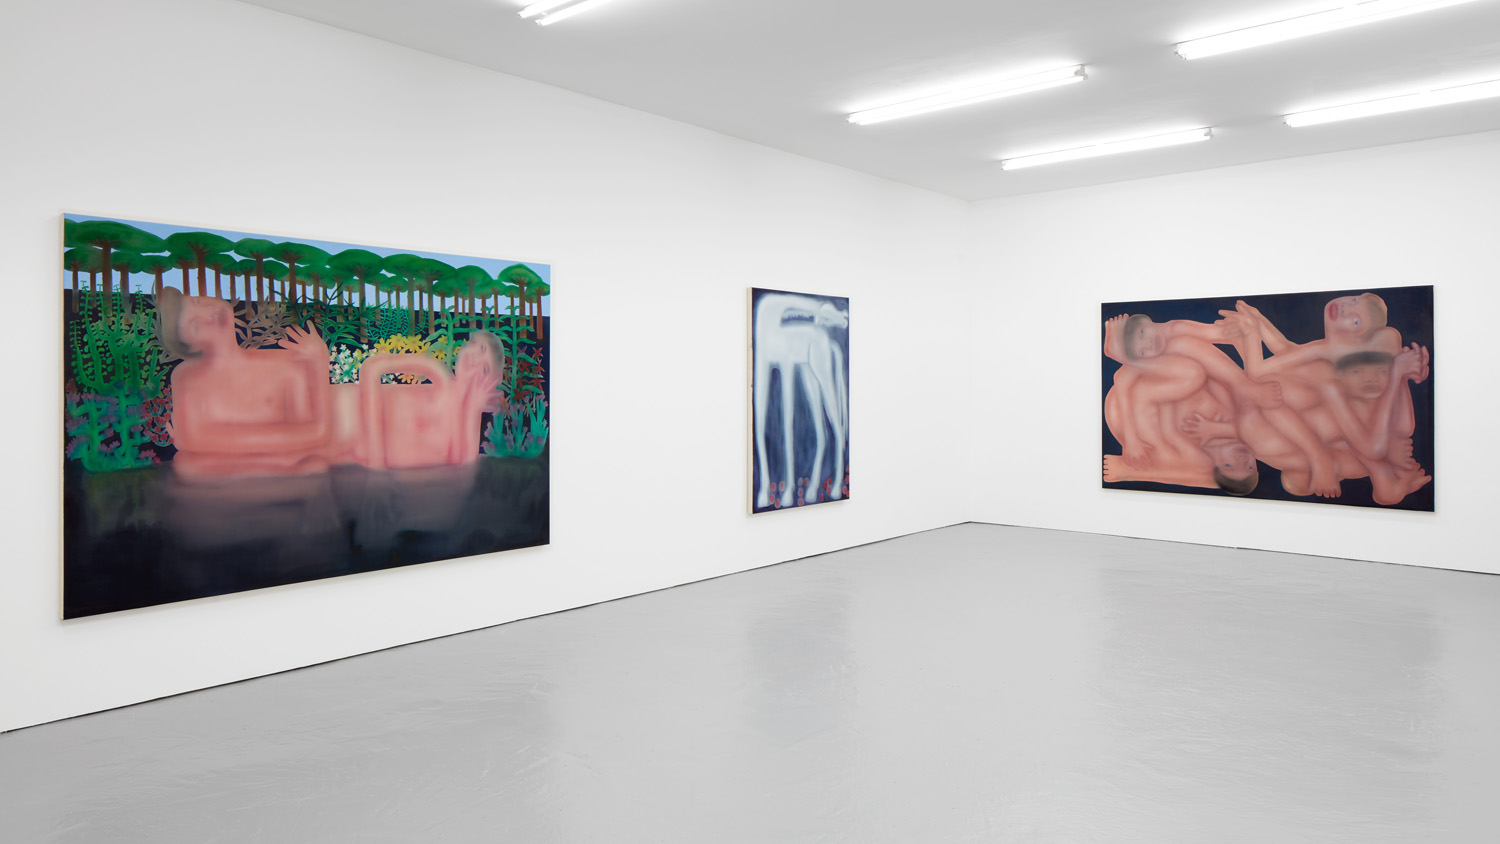 A Review Of In Dirty Water At J Hammond Projects London